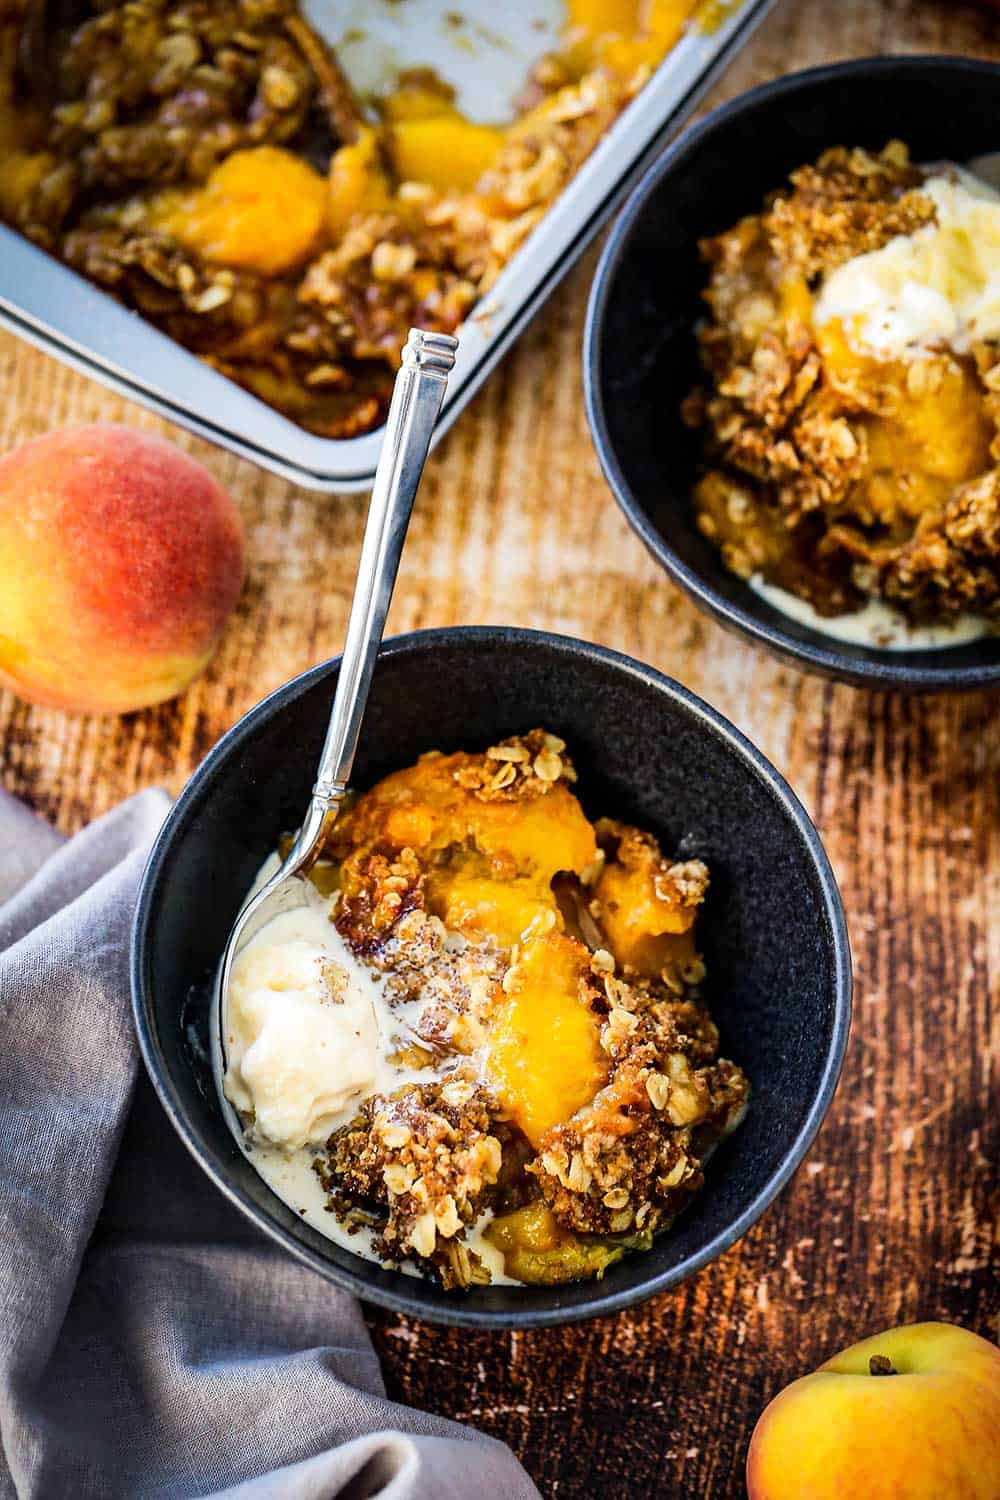 Two blue dessert bowls filled with peach crisp with a dollop of melting vanilla ice cream off to the side all next to a couple of peaches and a pan of the crisp.